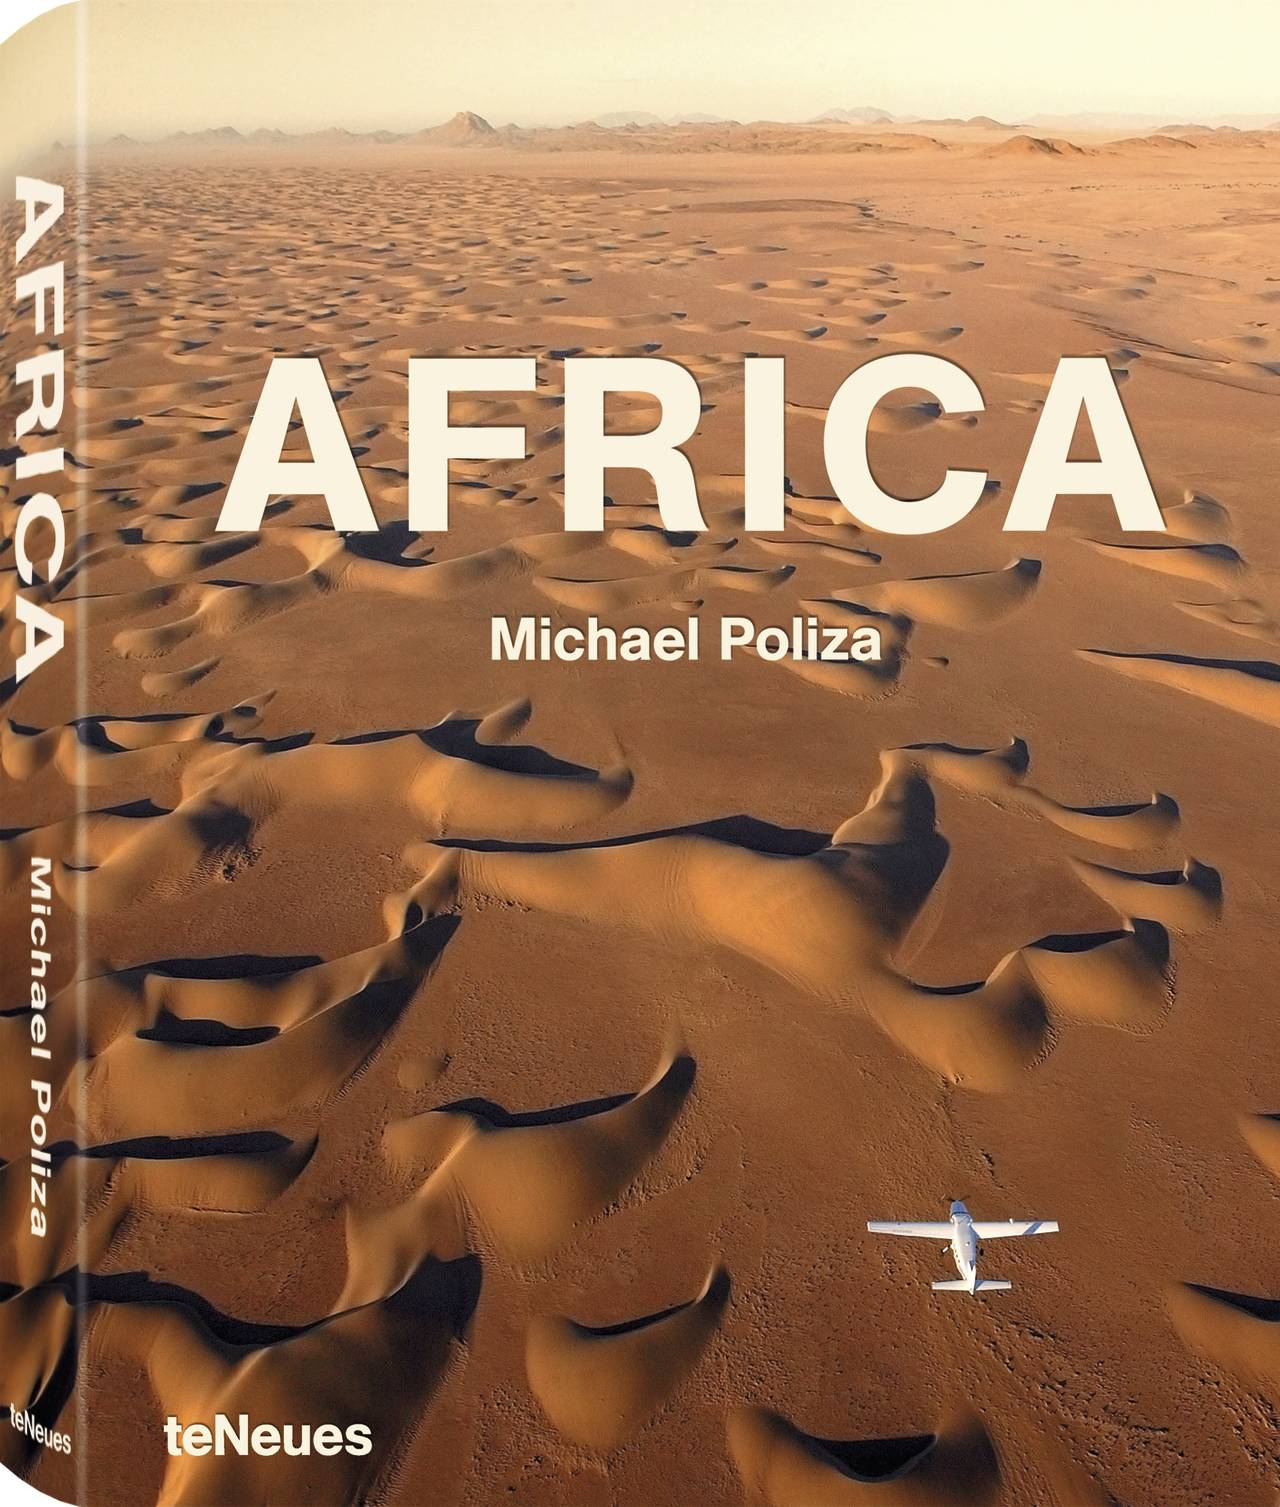 © AFRICA by Michael Poliza - published by teNeues, www.teneues.com. Flight to nowhere, Barchan Dunes, Skeleton Coast, Namibia, Photo © Michael Poliza. All rights reserved. www.michaelpoliza.com